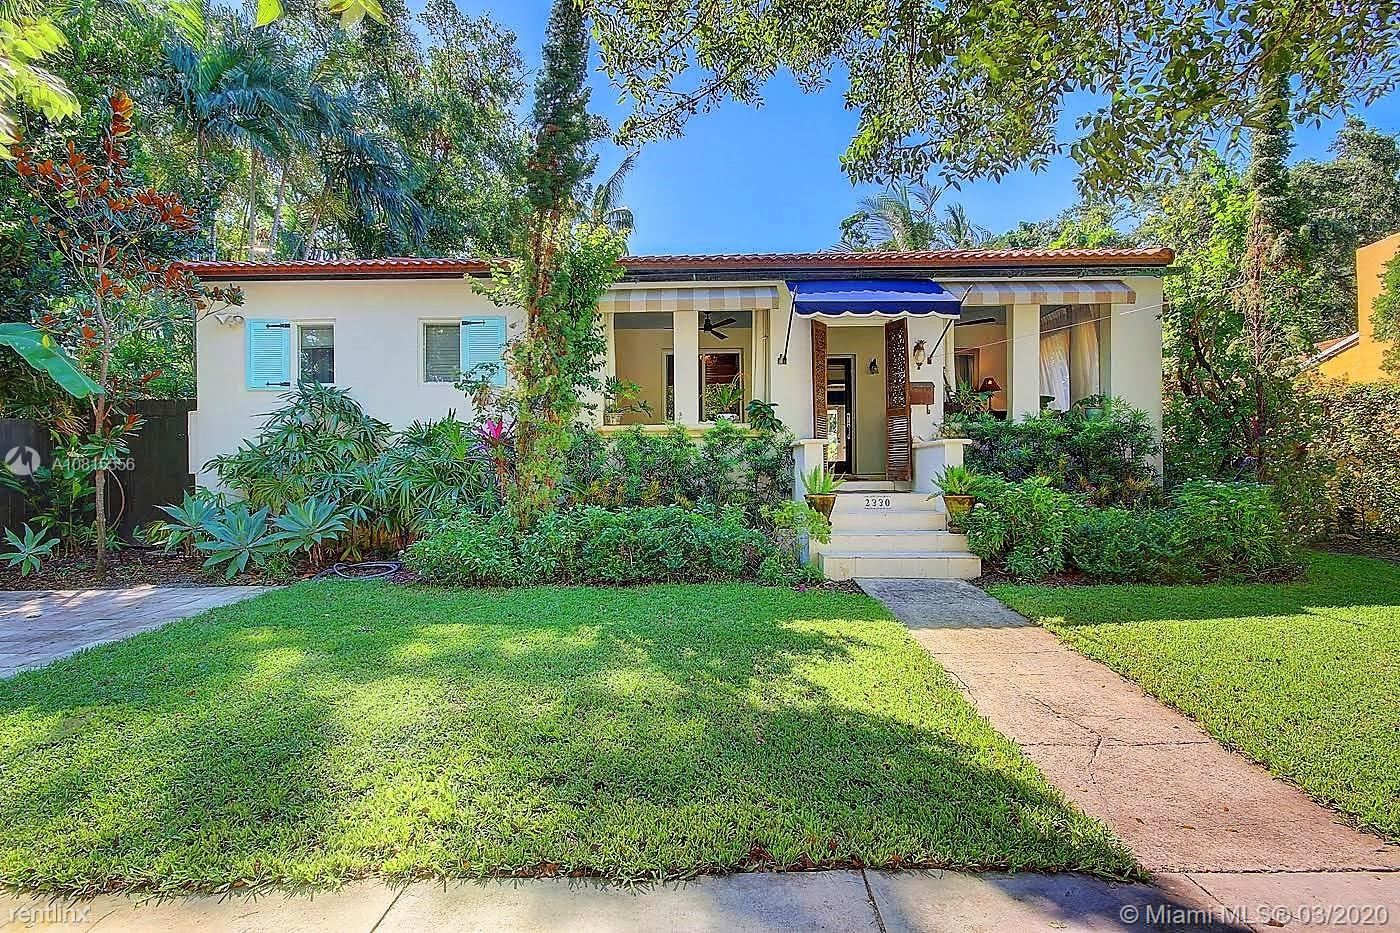 2330 Overbrook St, Coconut Grove, FL - $4,350